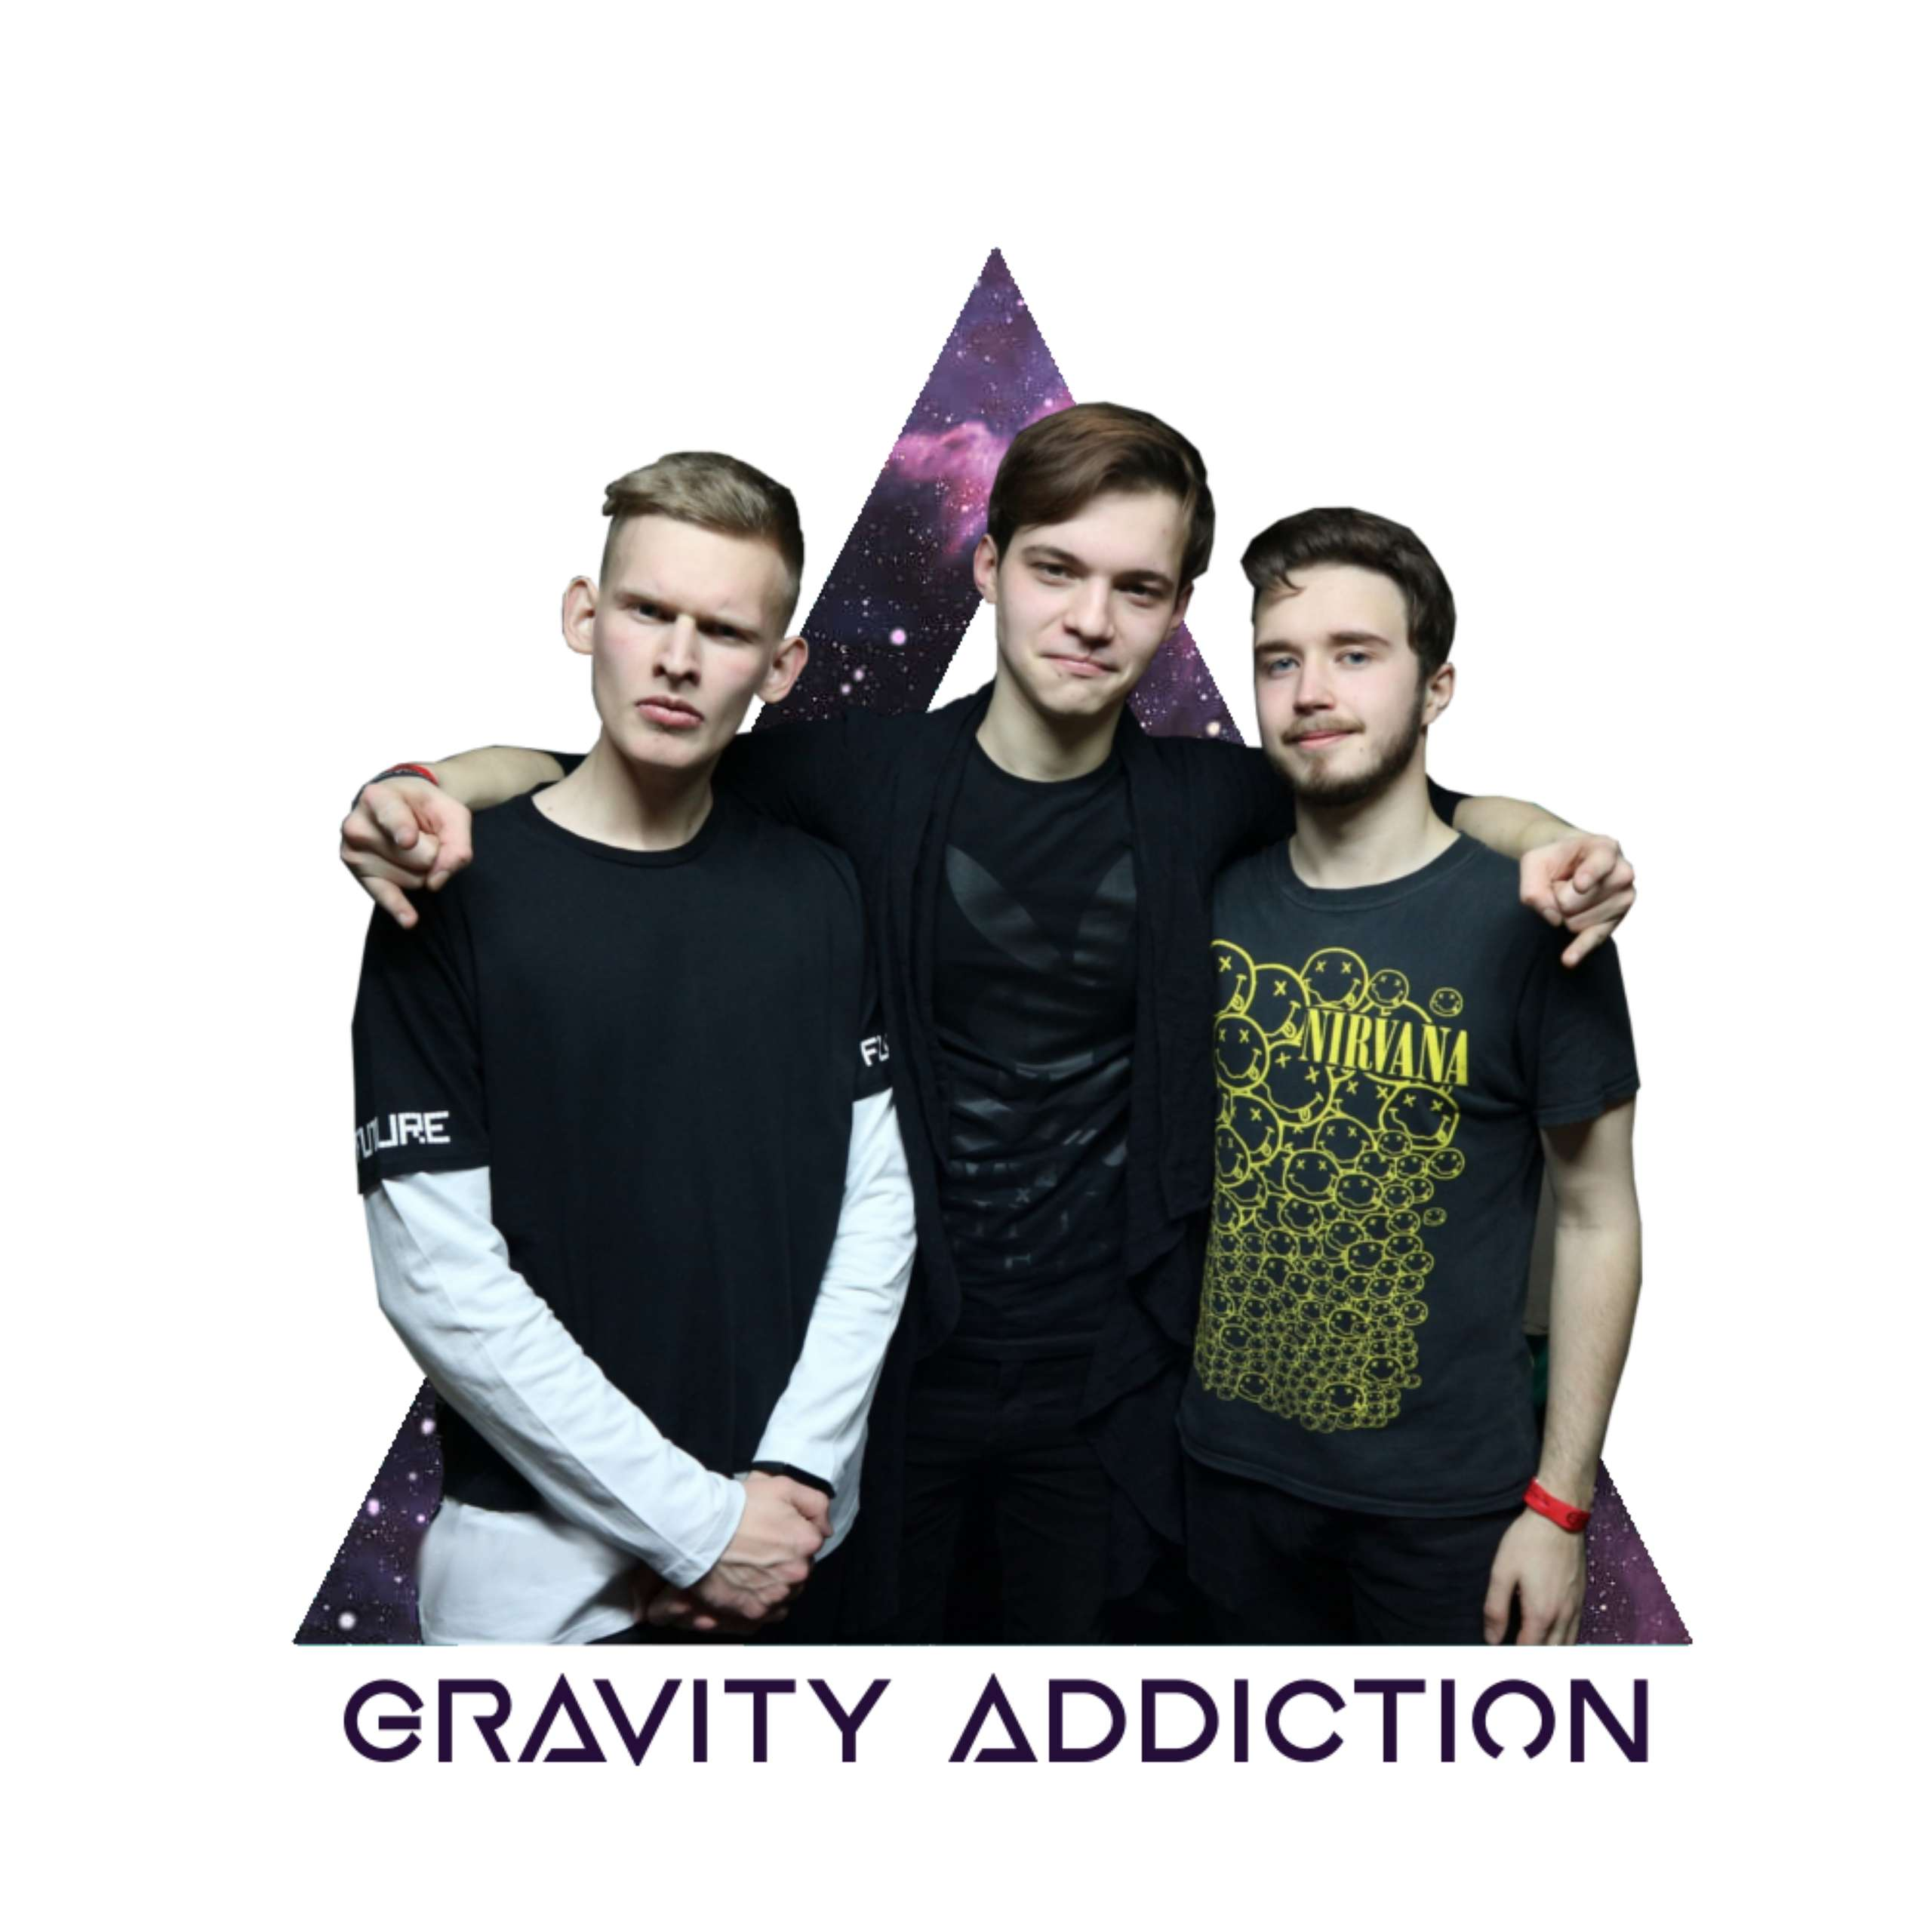 Gravity Addiction